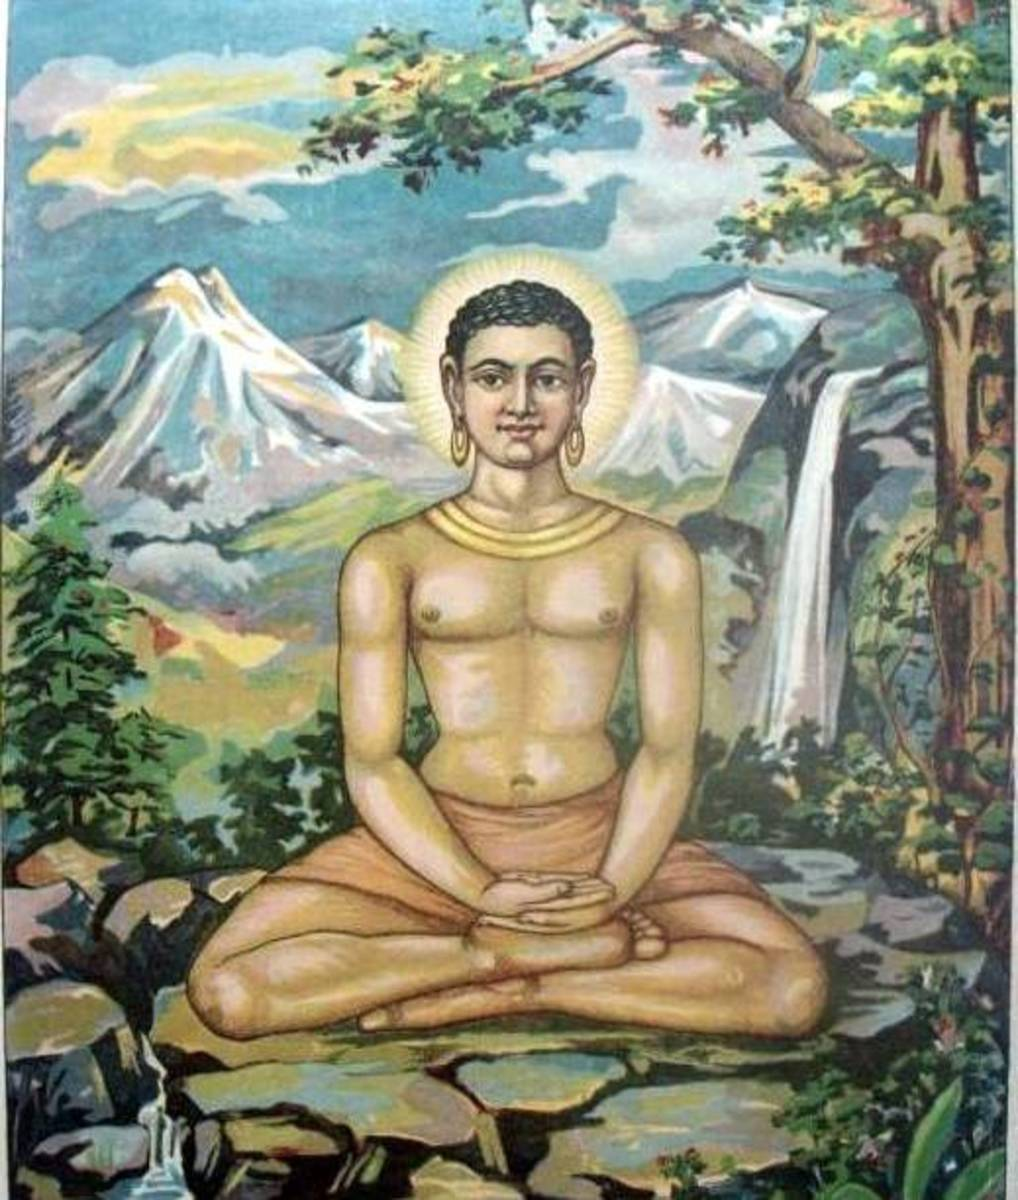 A depiction of Buddha meditating under the Bodhi tree.